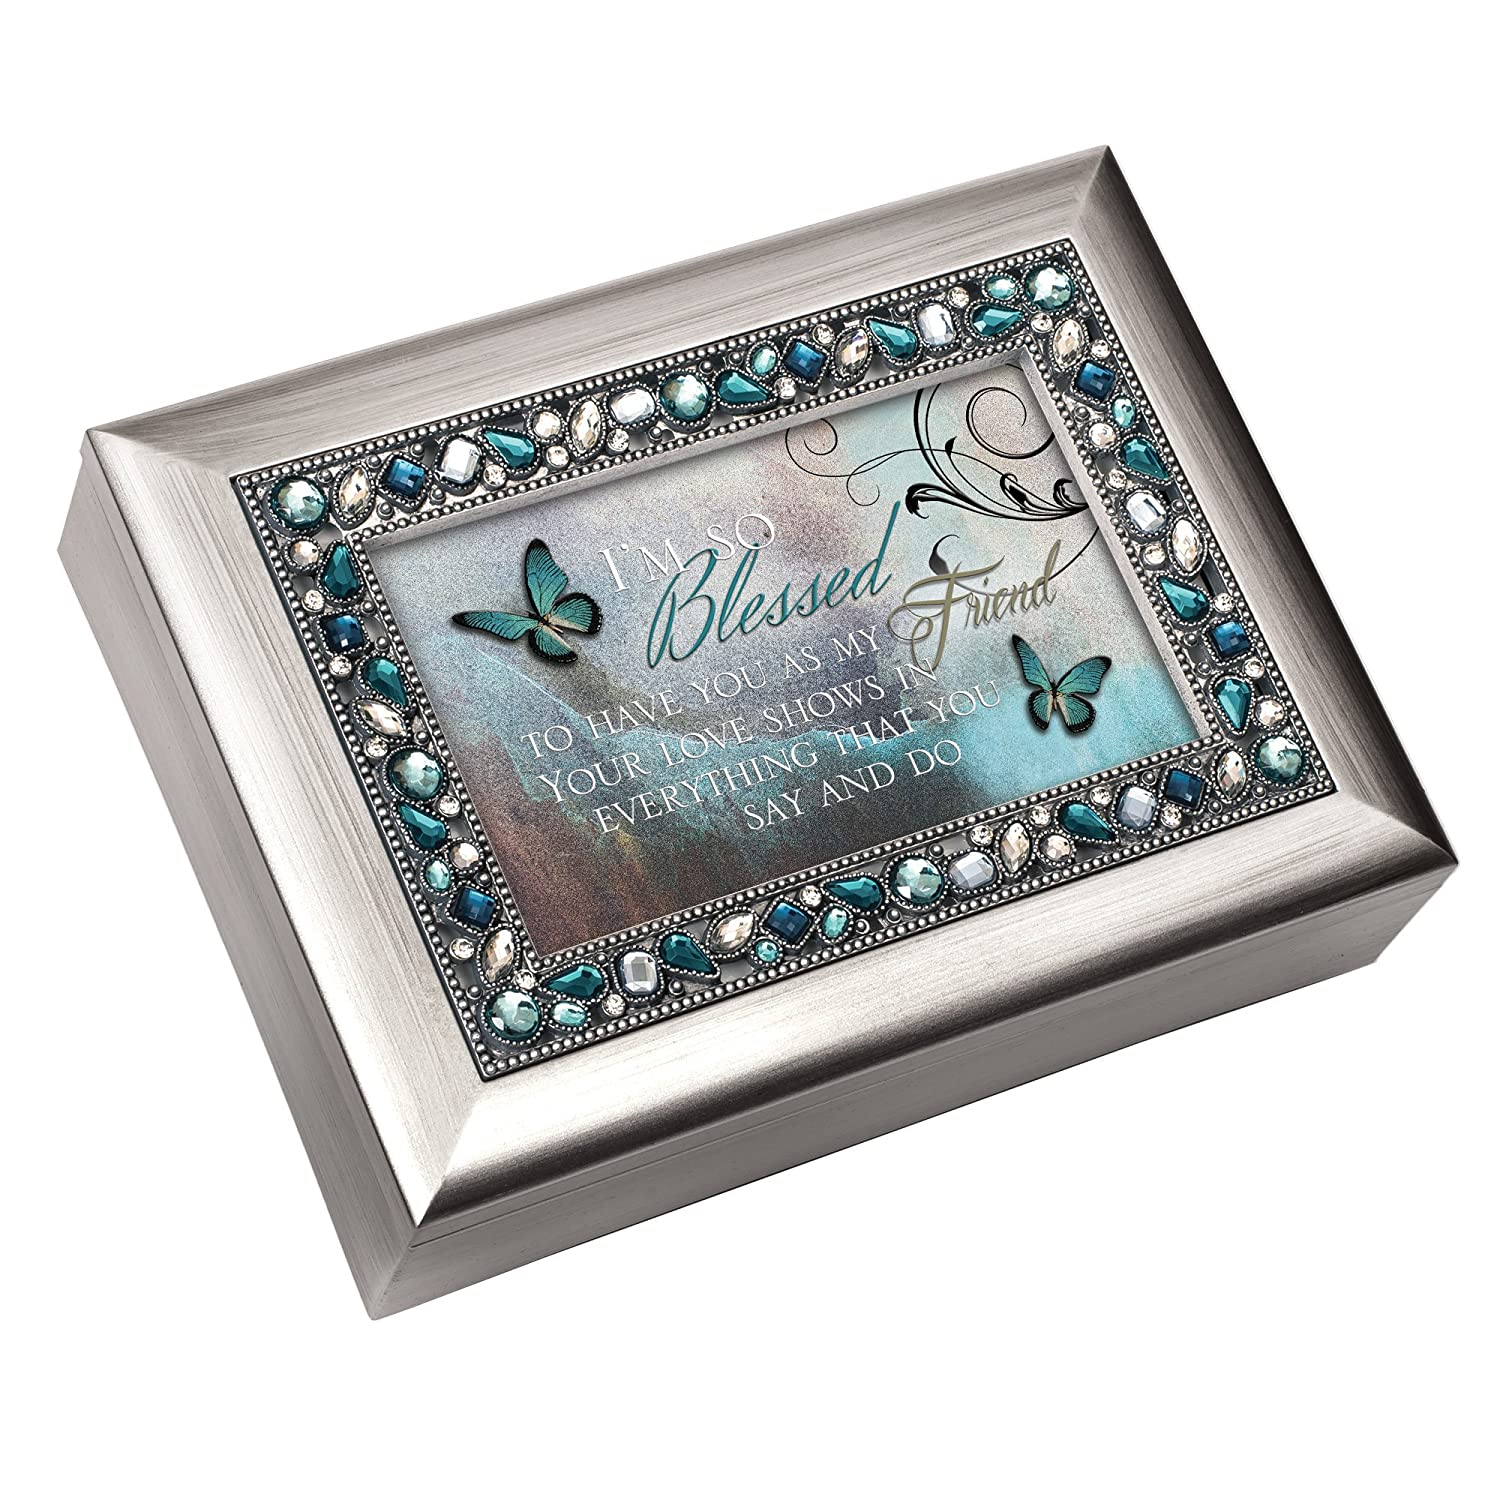 Cottage Garden I'm so Blessed to Have You as My Friend Brushed Silver Finish Decorative Jewel Lid Musical Jewelry Box - Plays Wind Beneath My Wings